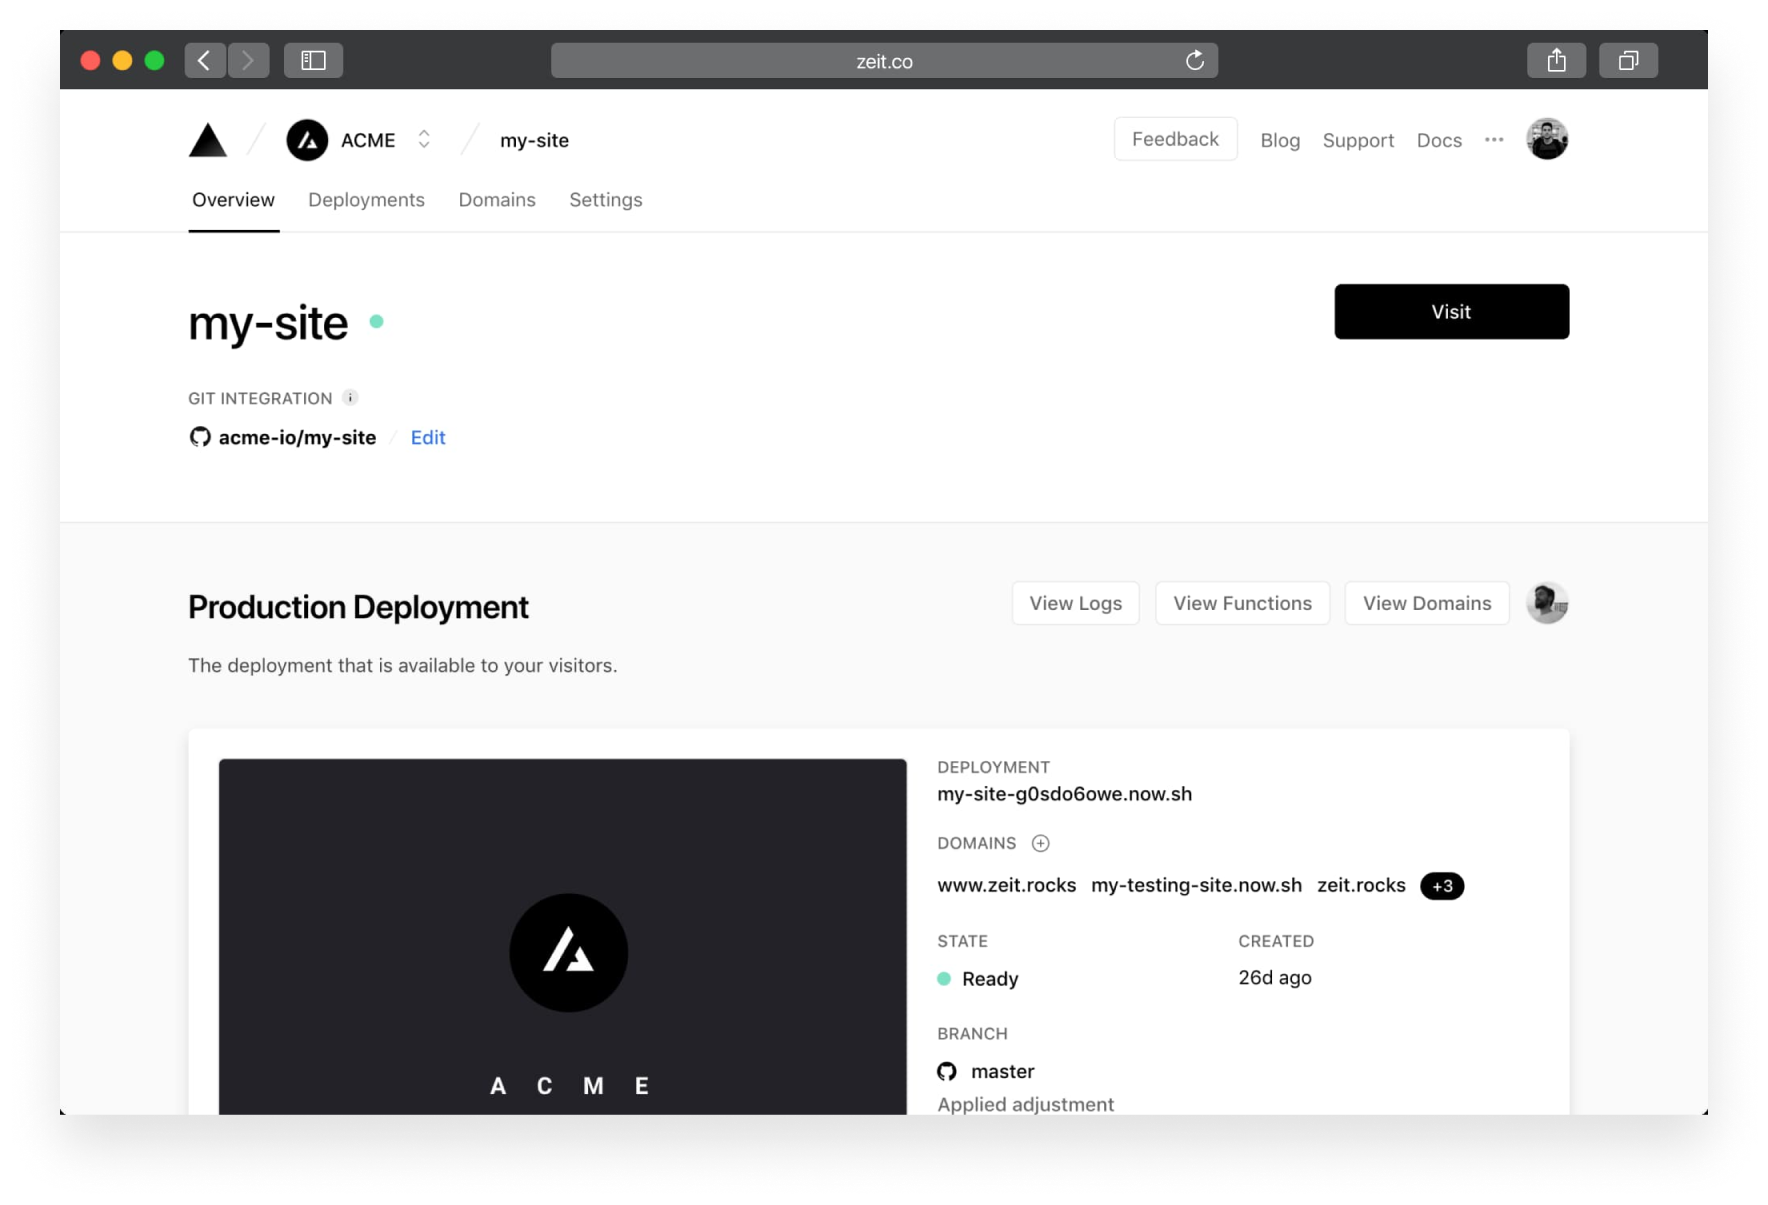 An overview of your live production deployment.